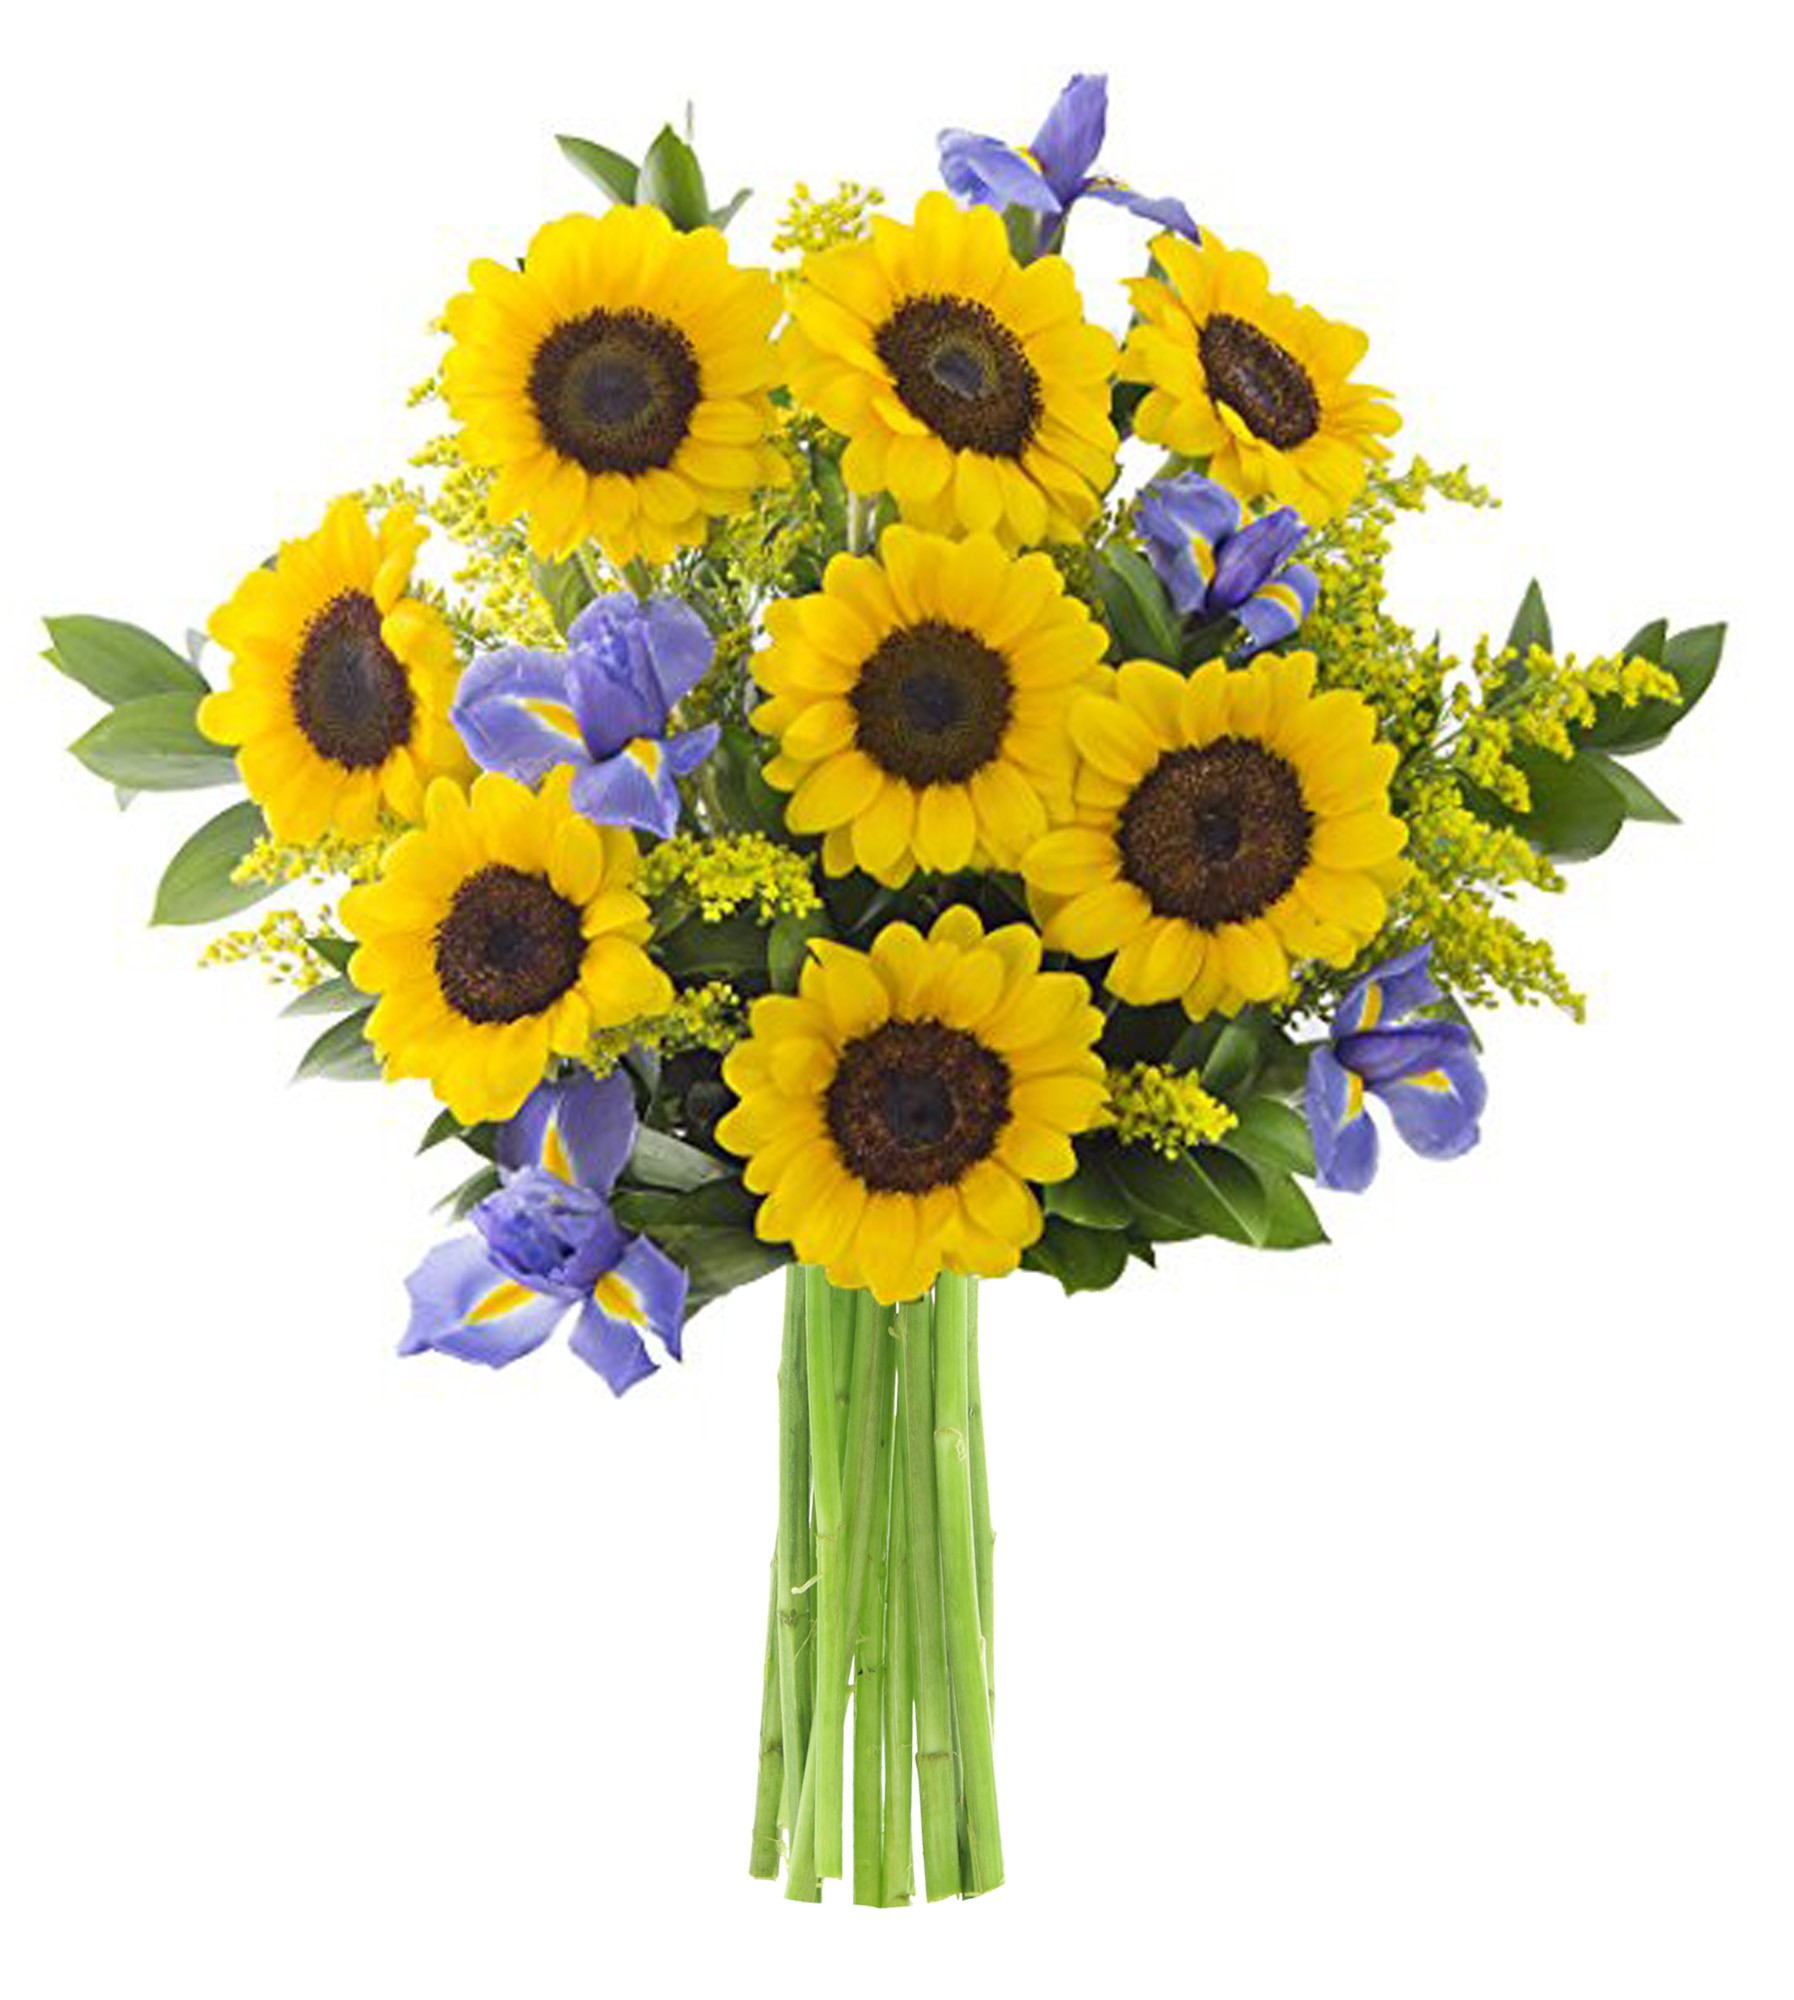 KaBloom: Bouquet of 8 Yellow Sunflowers, 5 Blue Irises, 5 Yellow Solidago Asters, 7 Israeli Ruscus Greens - Fresh Flowers for Delivery